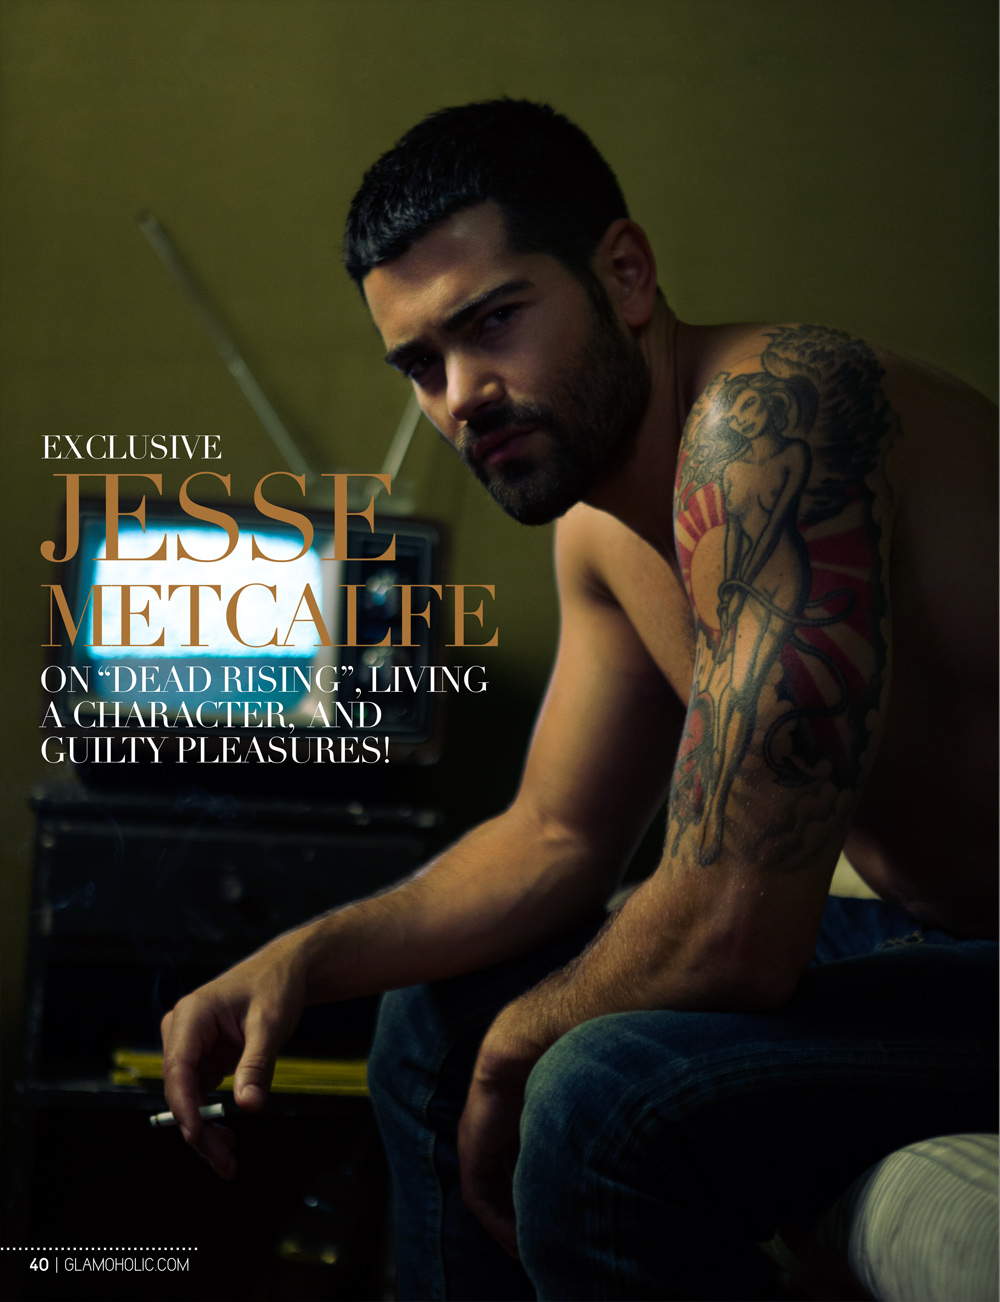 Jesse Metcalfe in Glamholic